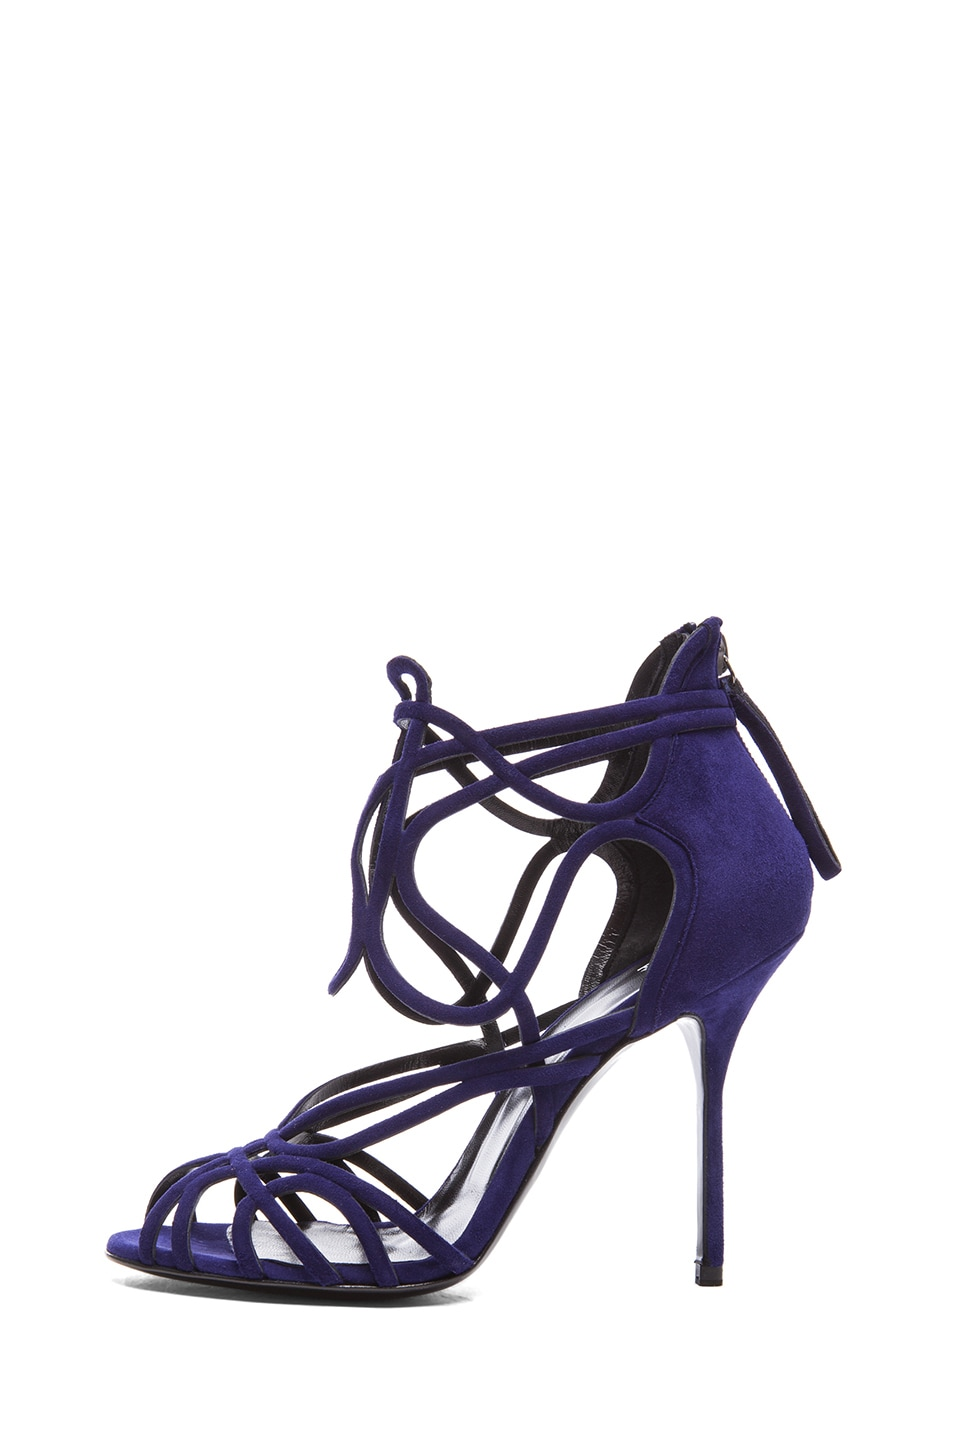 Image 1 of Pierre Hardy Mucha Kid Suede Heels in Dark Blue